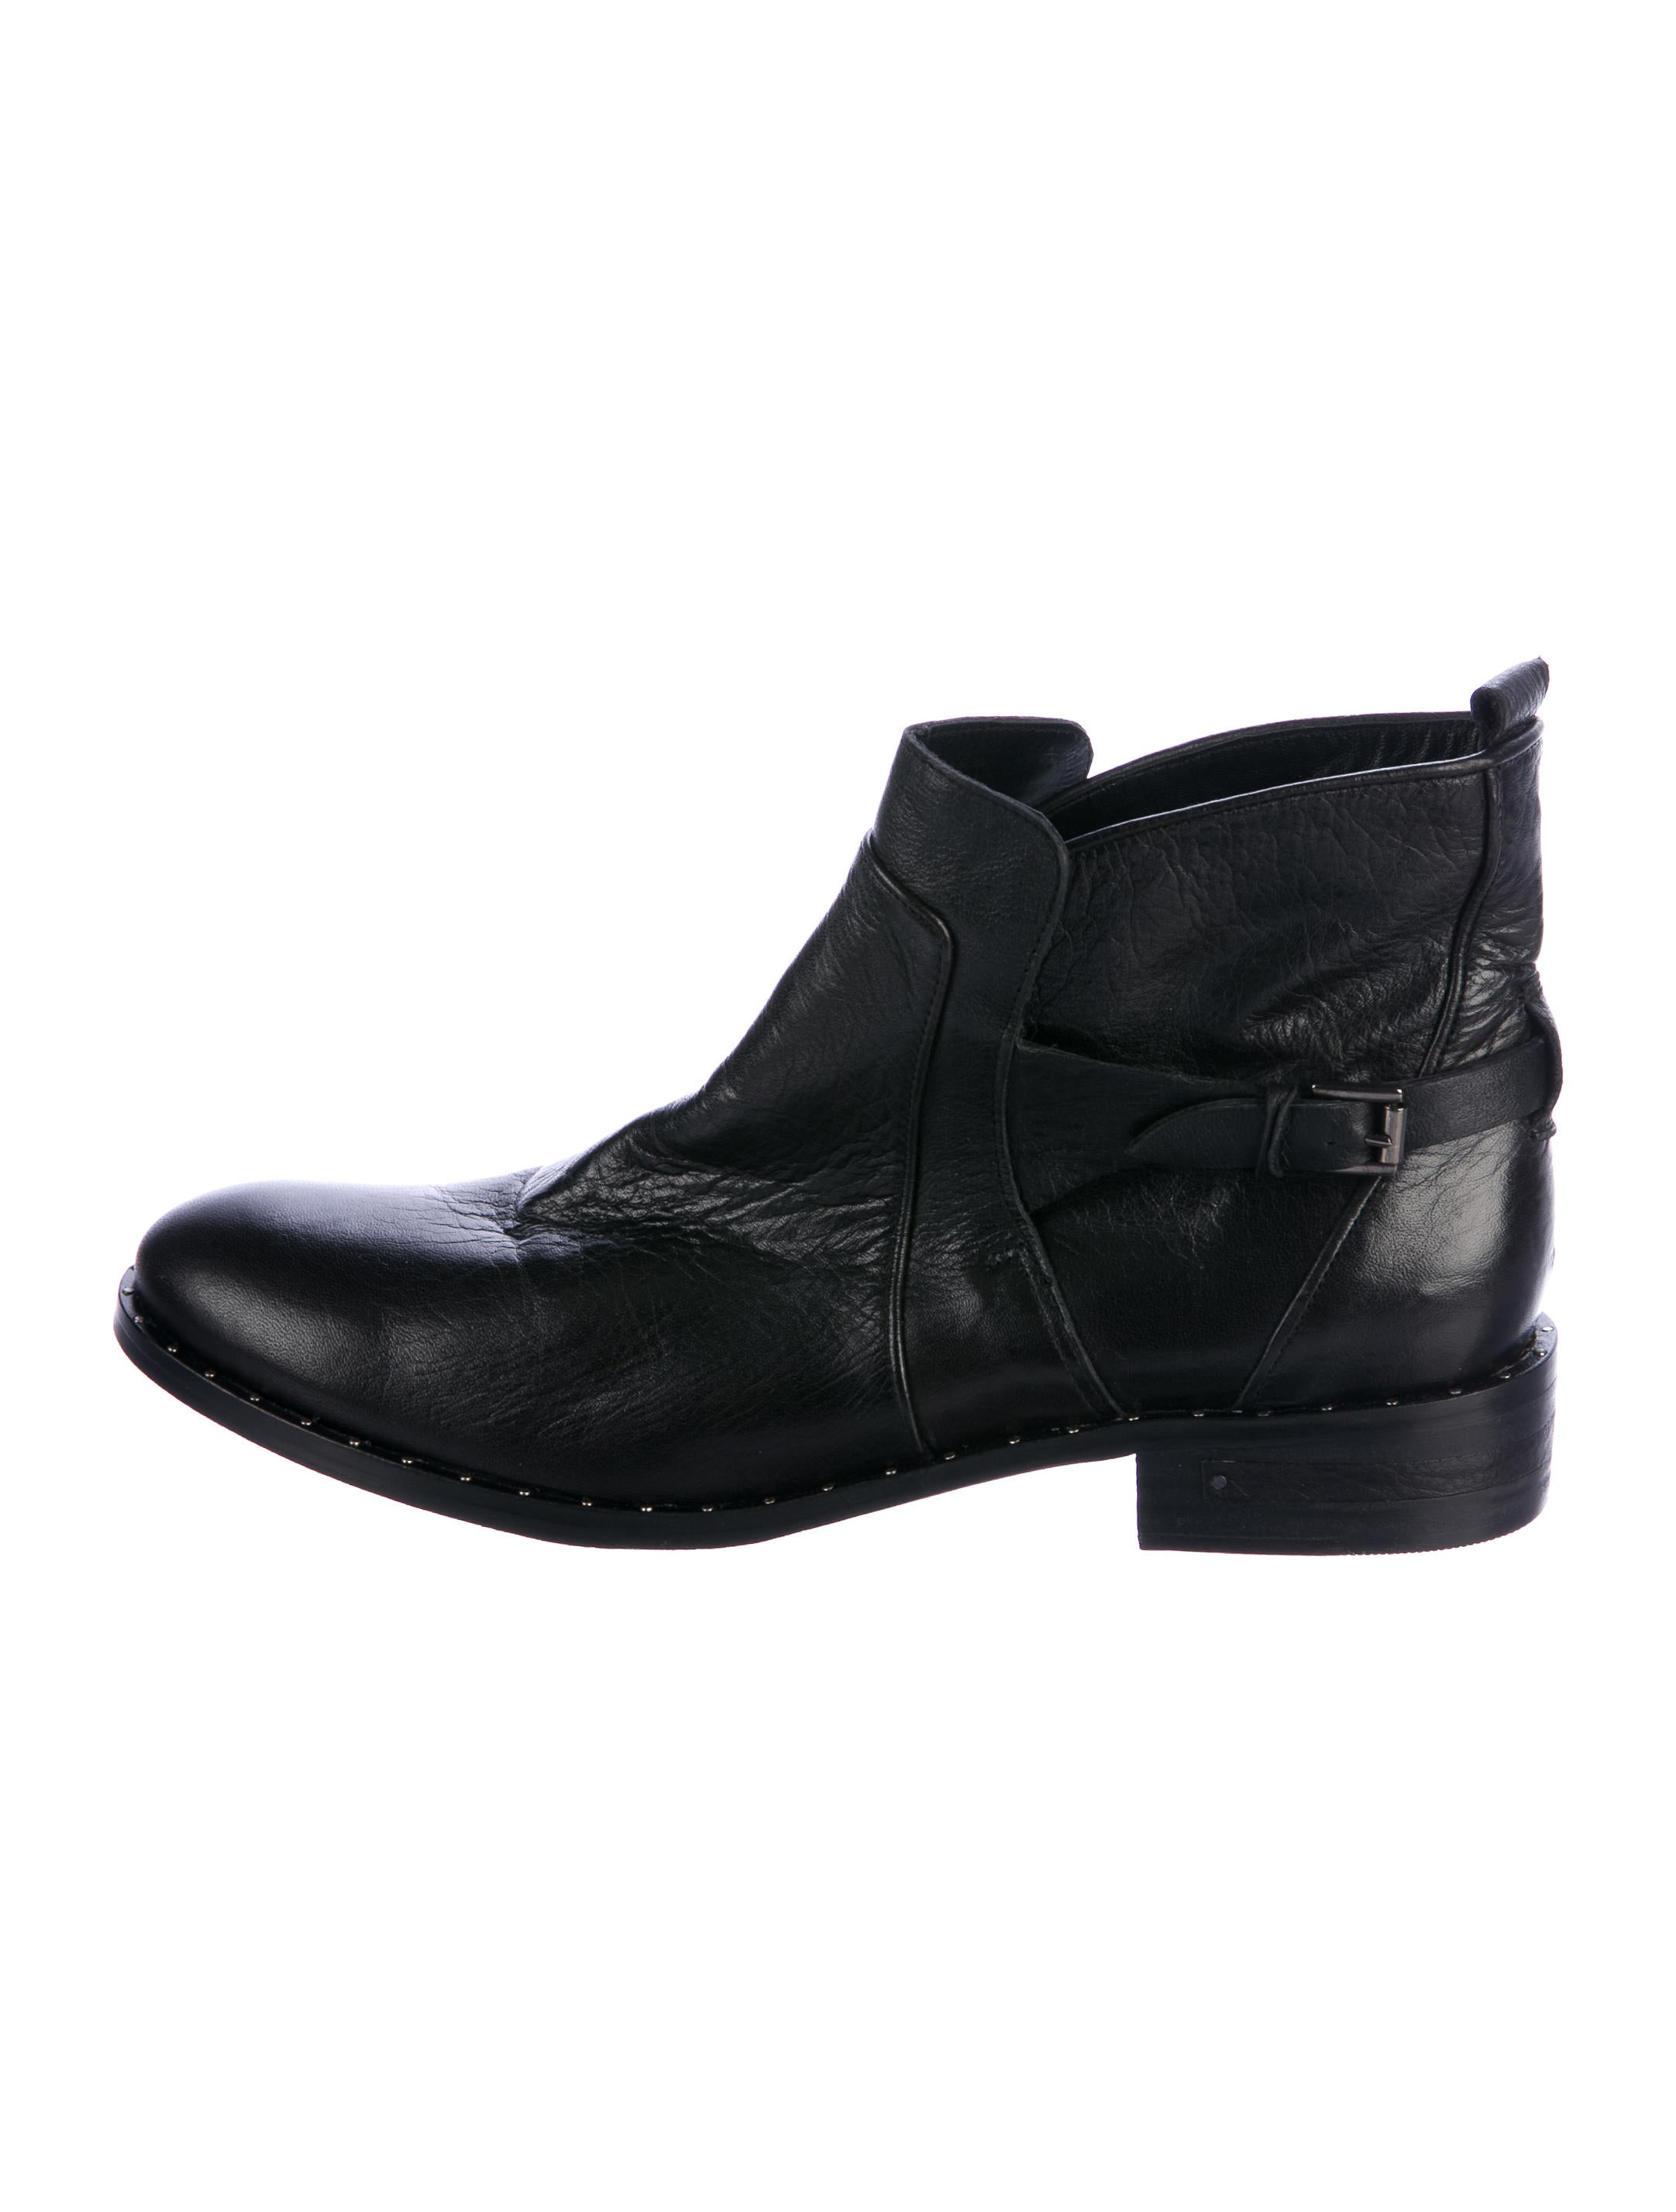 Freda Salvador Leather Ankle Boots discount purchase 5NPIfZUqX